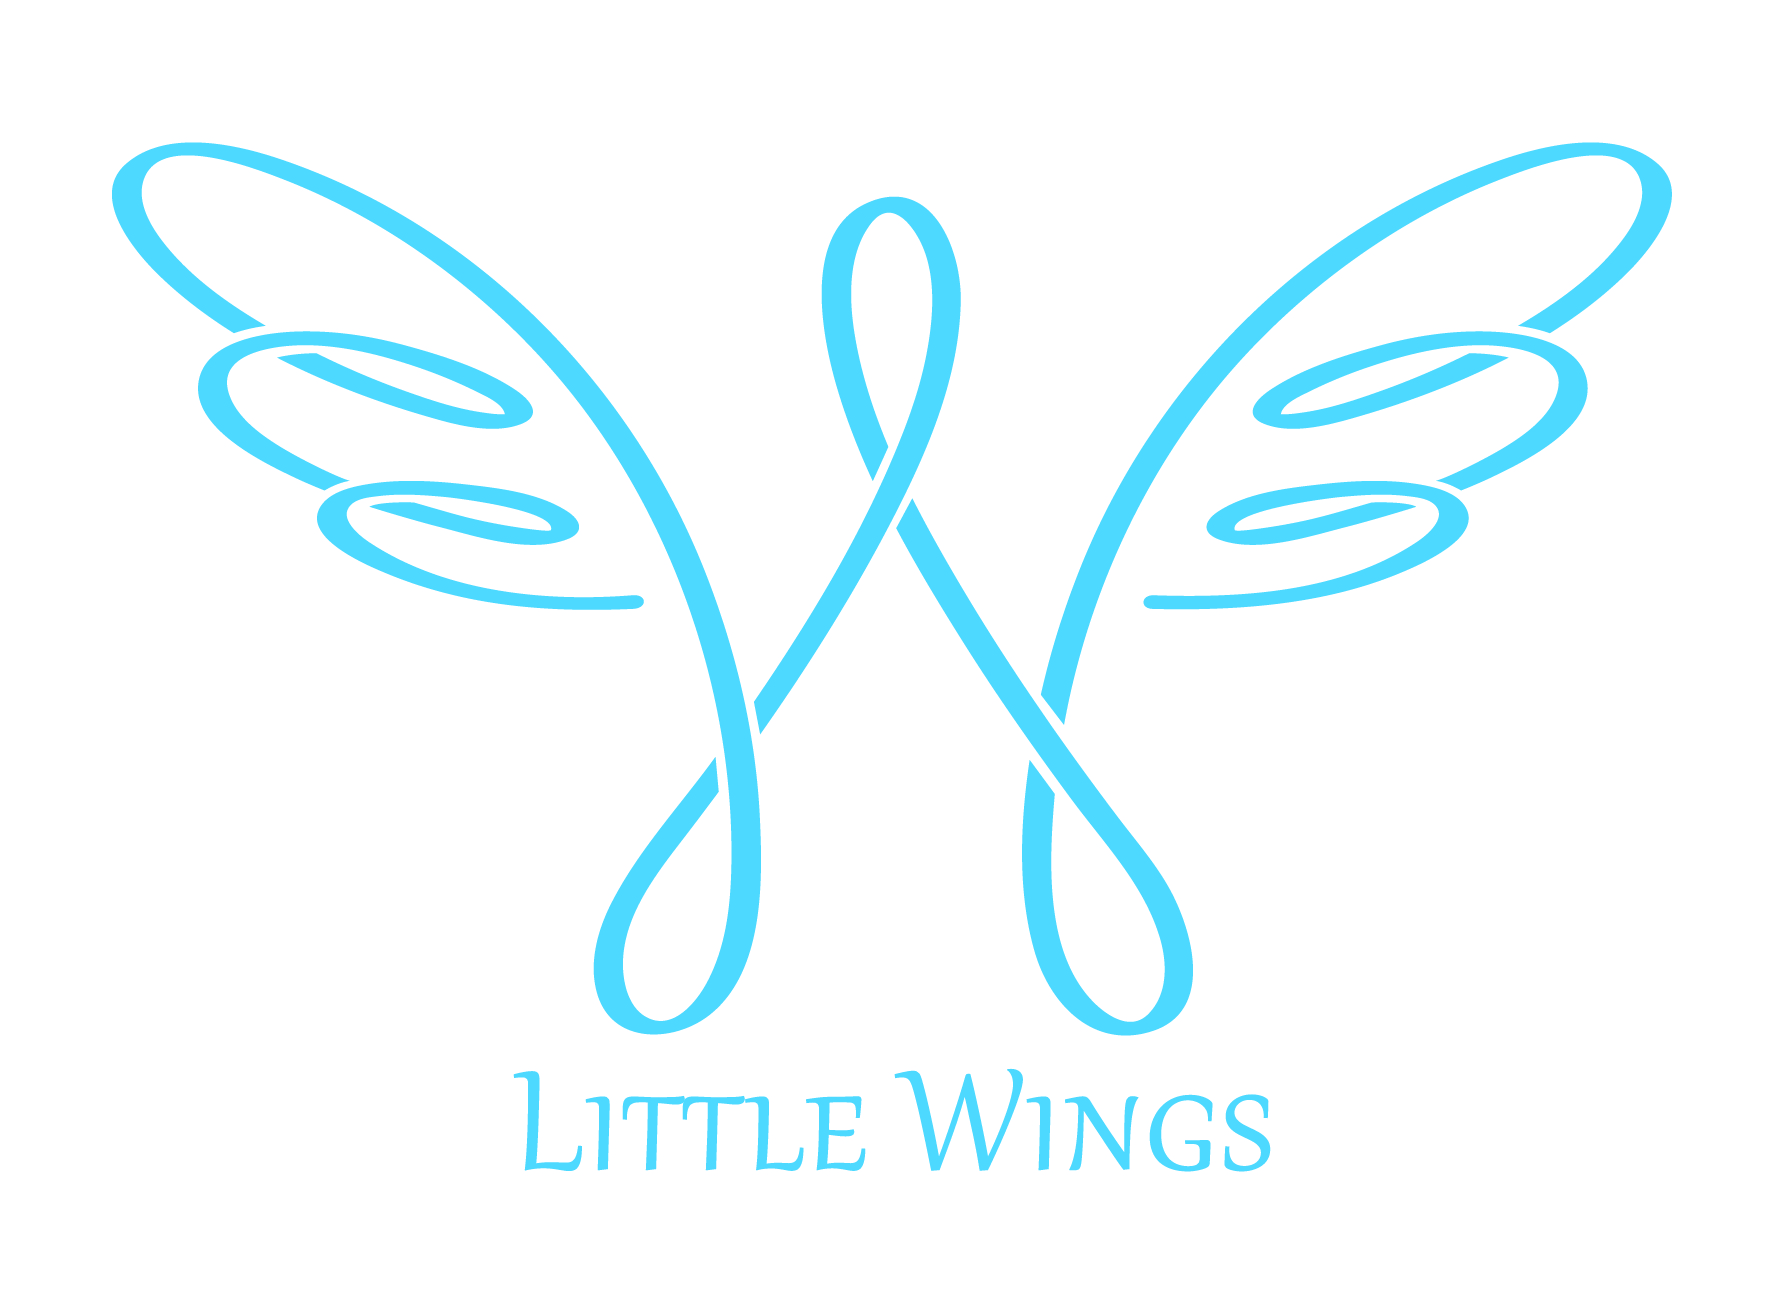 About - Find out about our charity,mission, and the results of our Little Wings Golf Tournament.